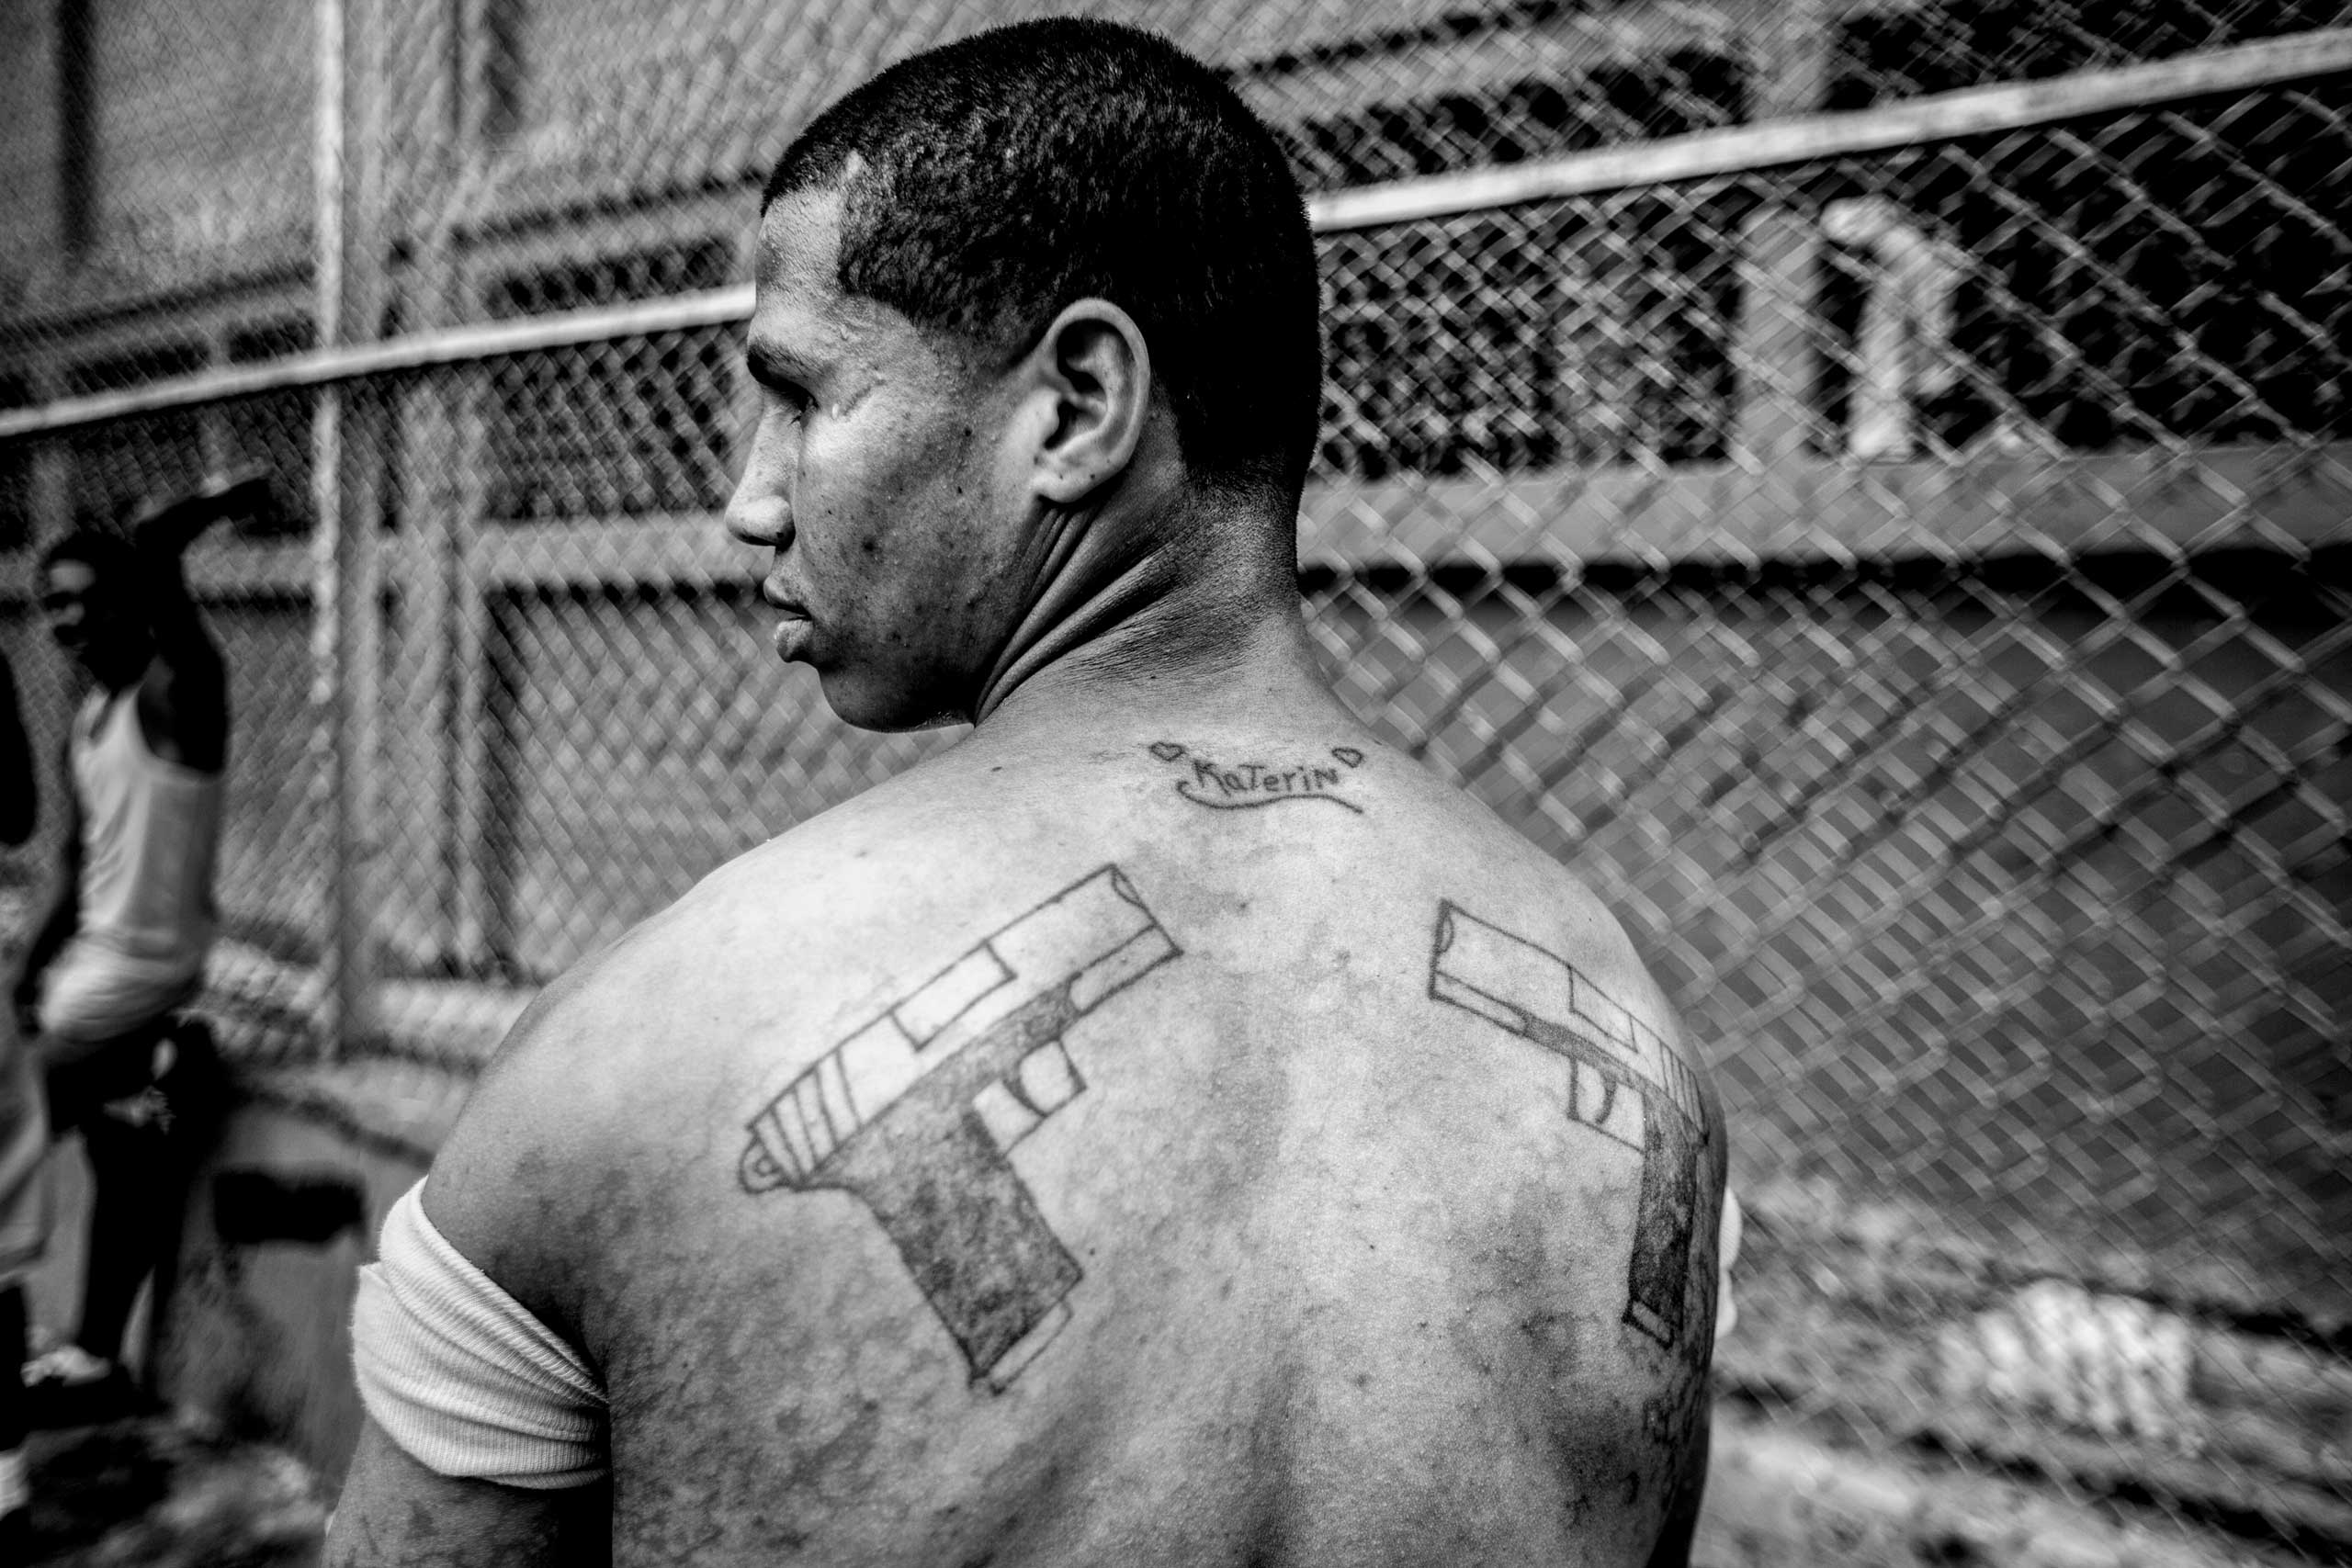 An inmate poses for a photo showing his tattoos dedicated to a girl named Katerin. Guatire, outside Caracas, April 2014.